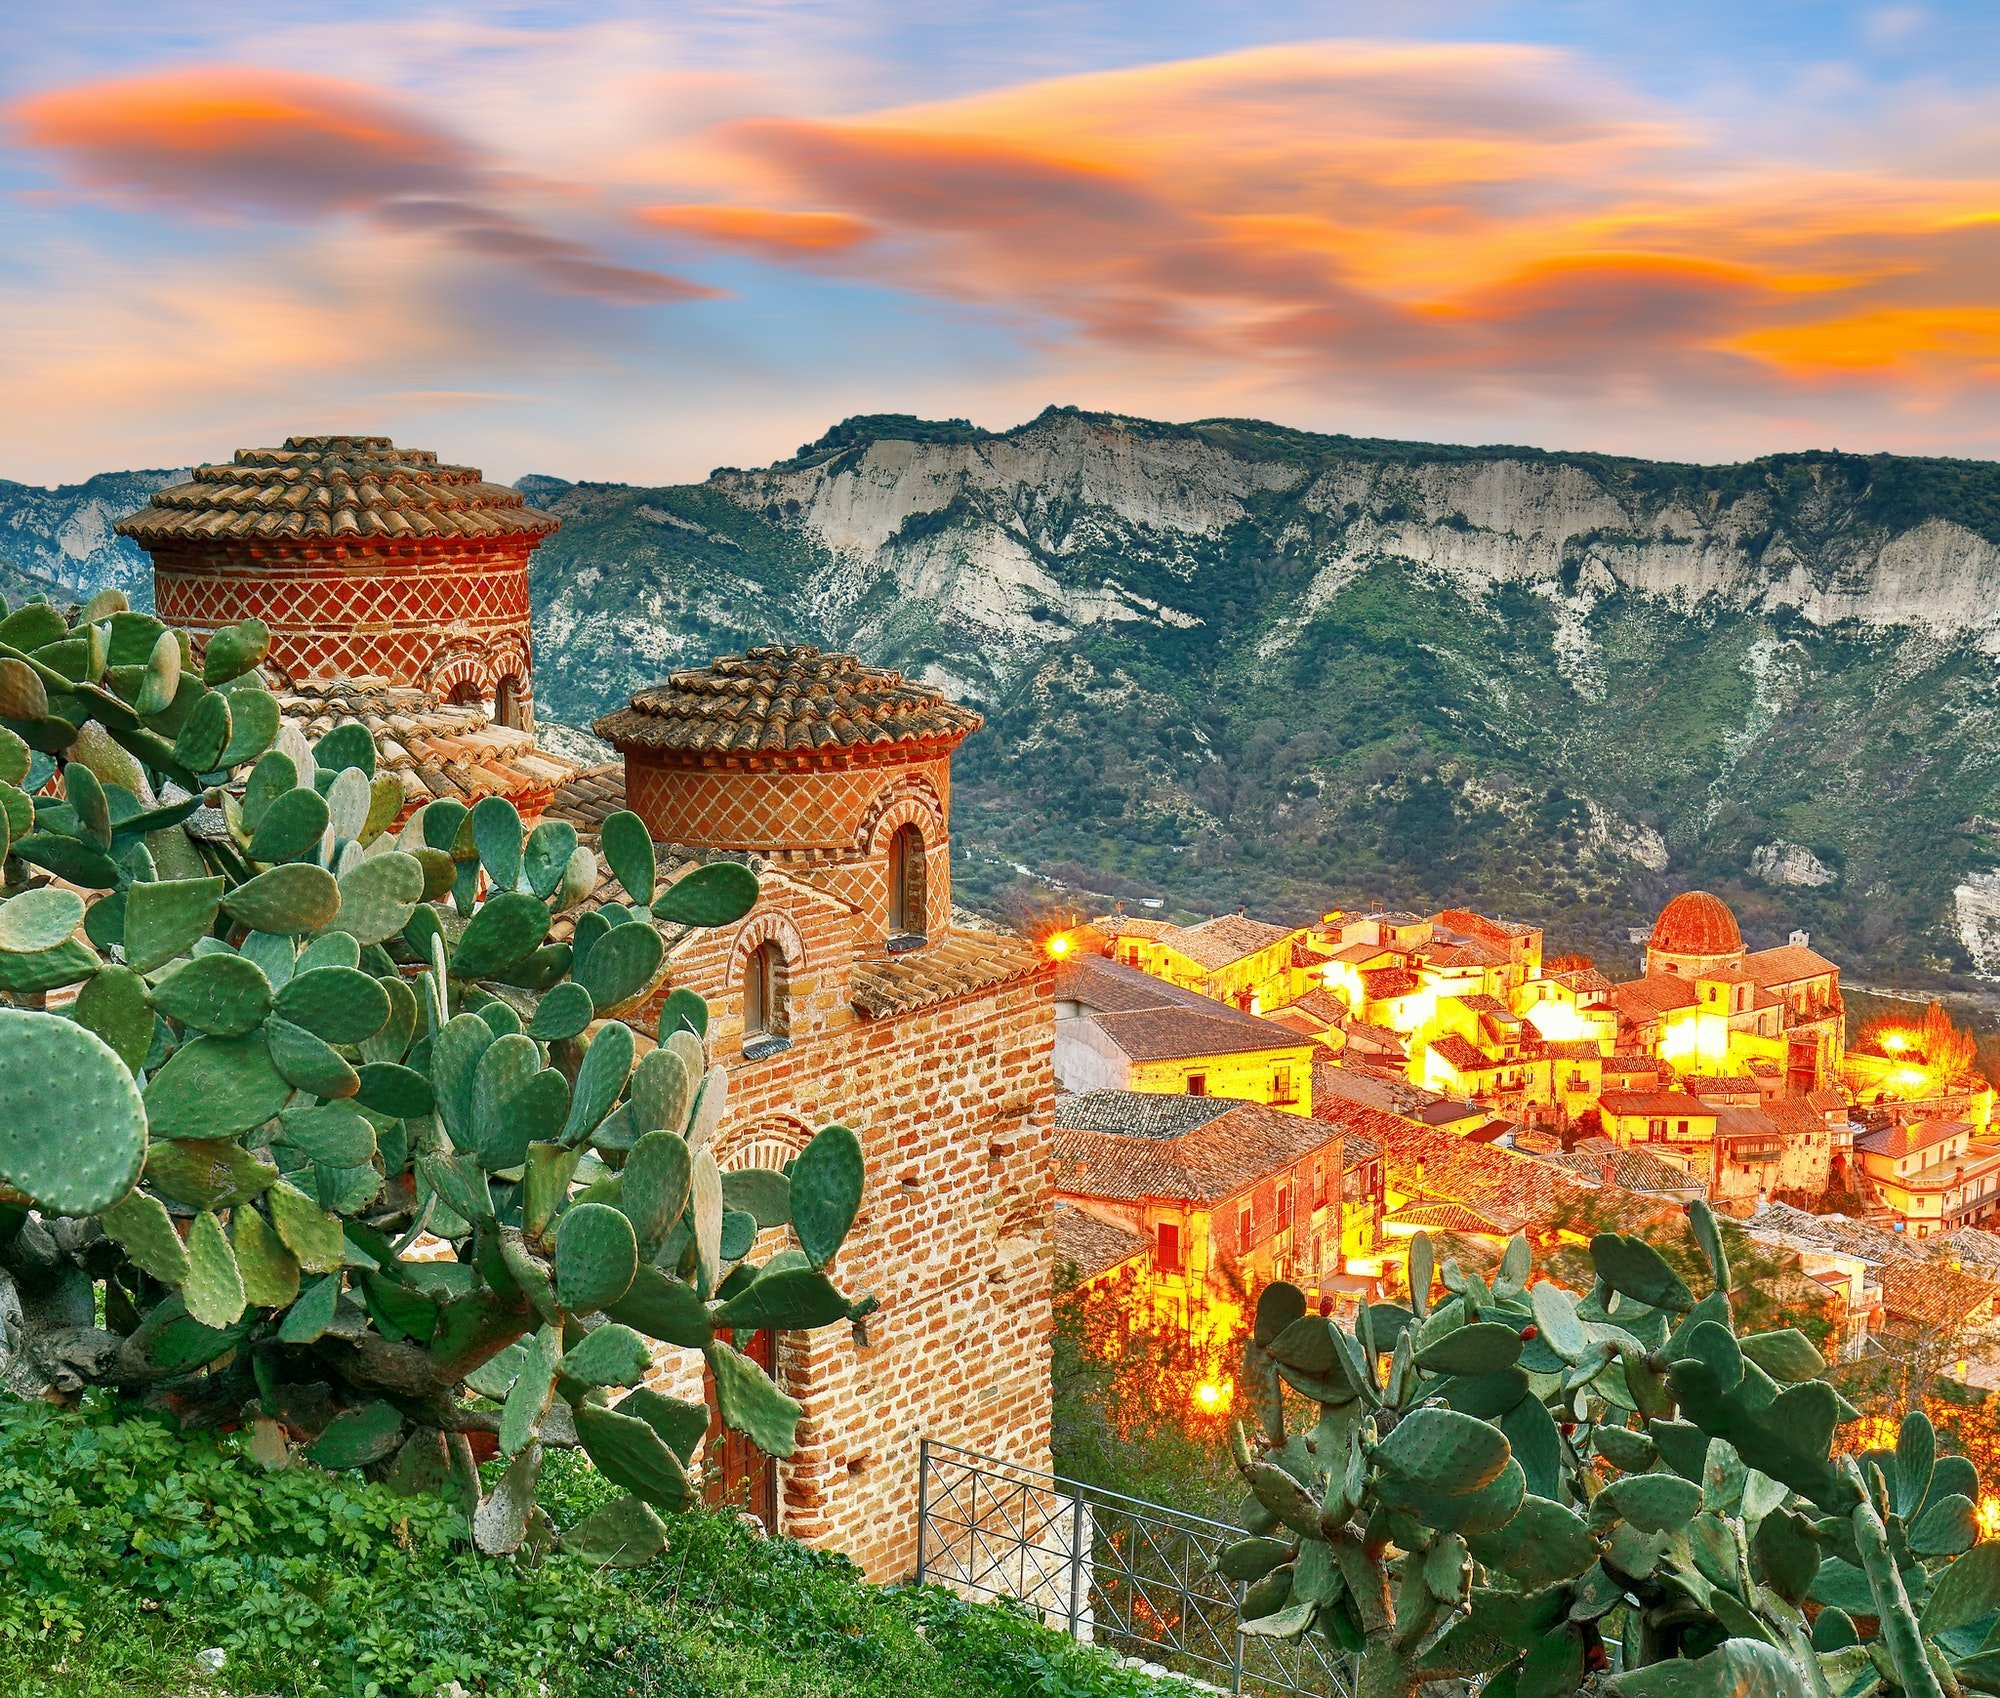 Sunrise over old famous medieval village Stilo in Calabria